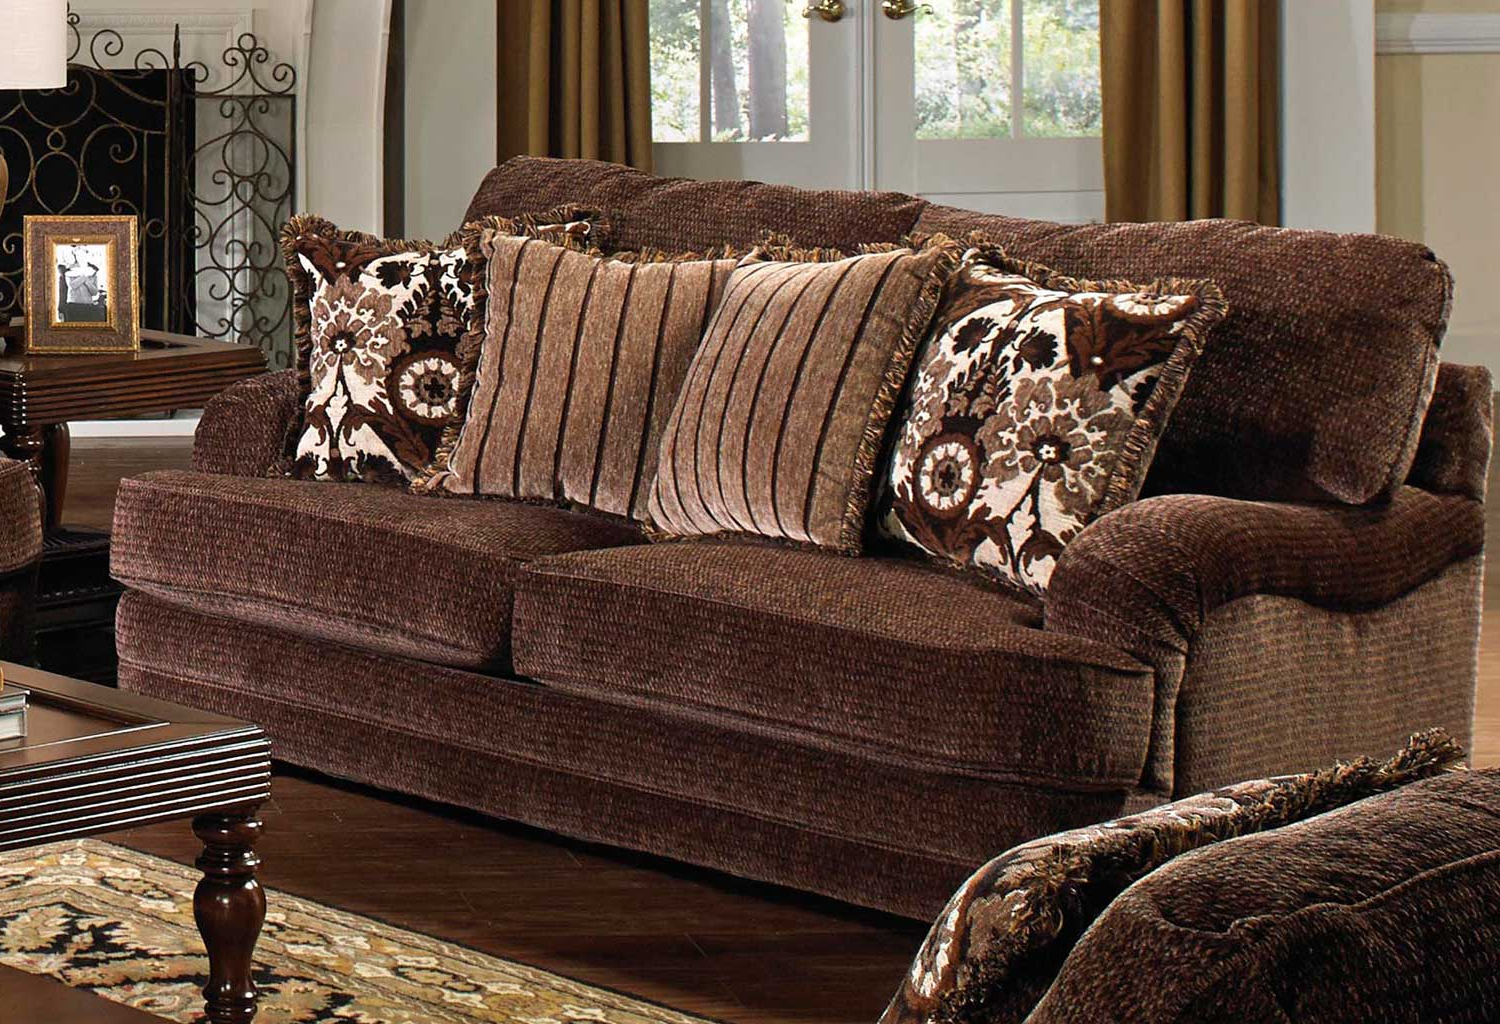 Brennan Sofa Chairs Throughout Most Up To Date Jackson Brennan Sofa Set – Espresso Jf 4438 Sofa Set Espresso At (Gallery 17 of 20)